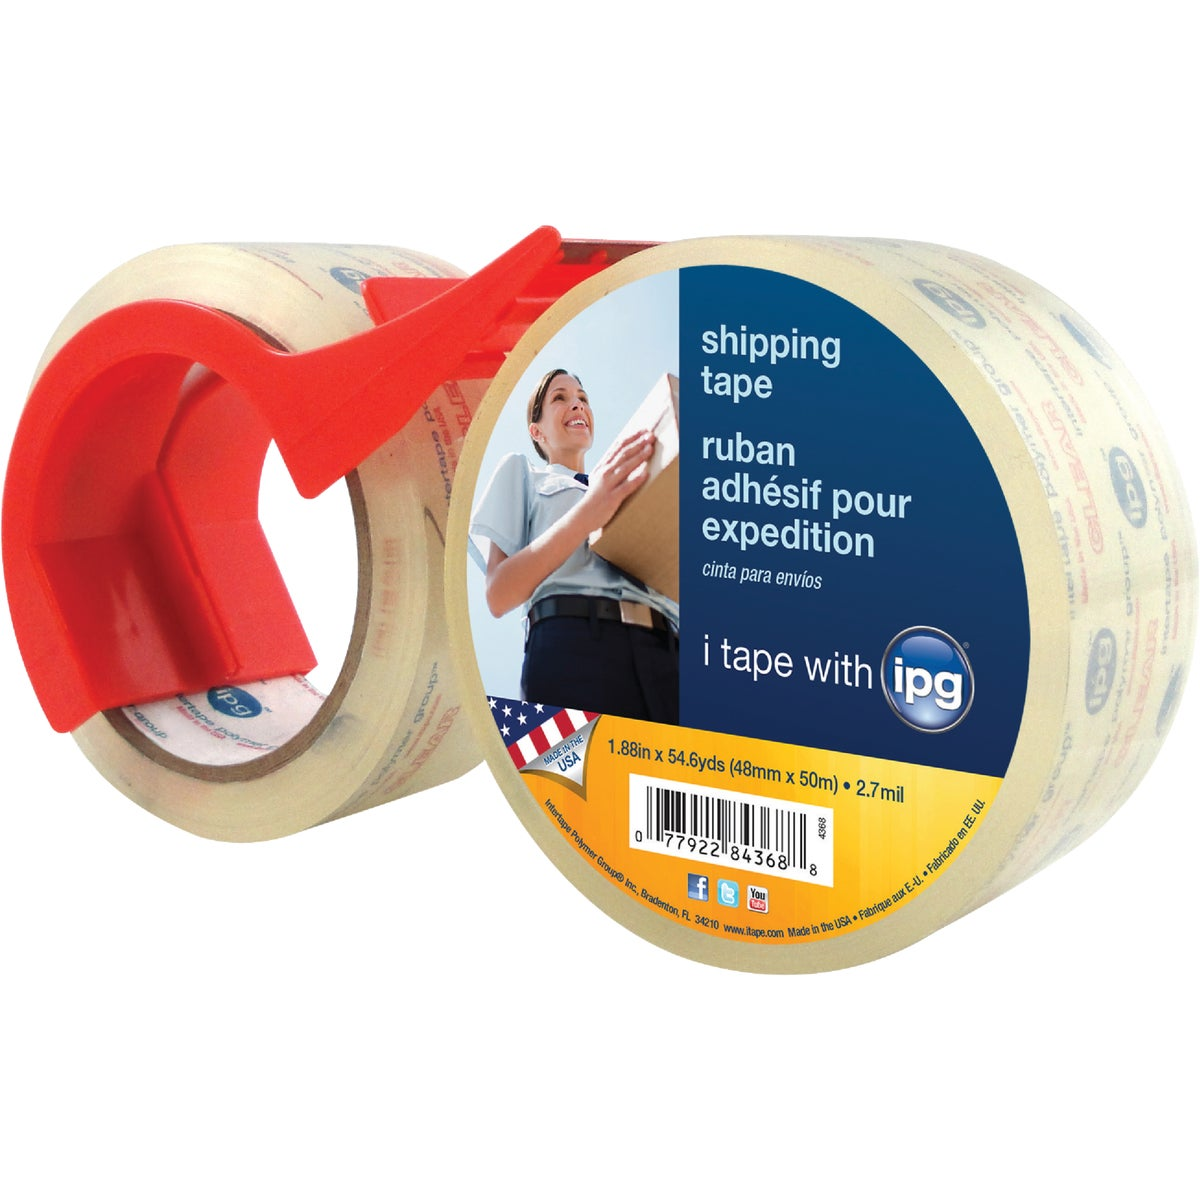 2PK SEALING TAPE - 84368 by Intertape Polymer